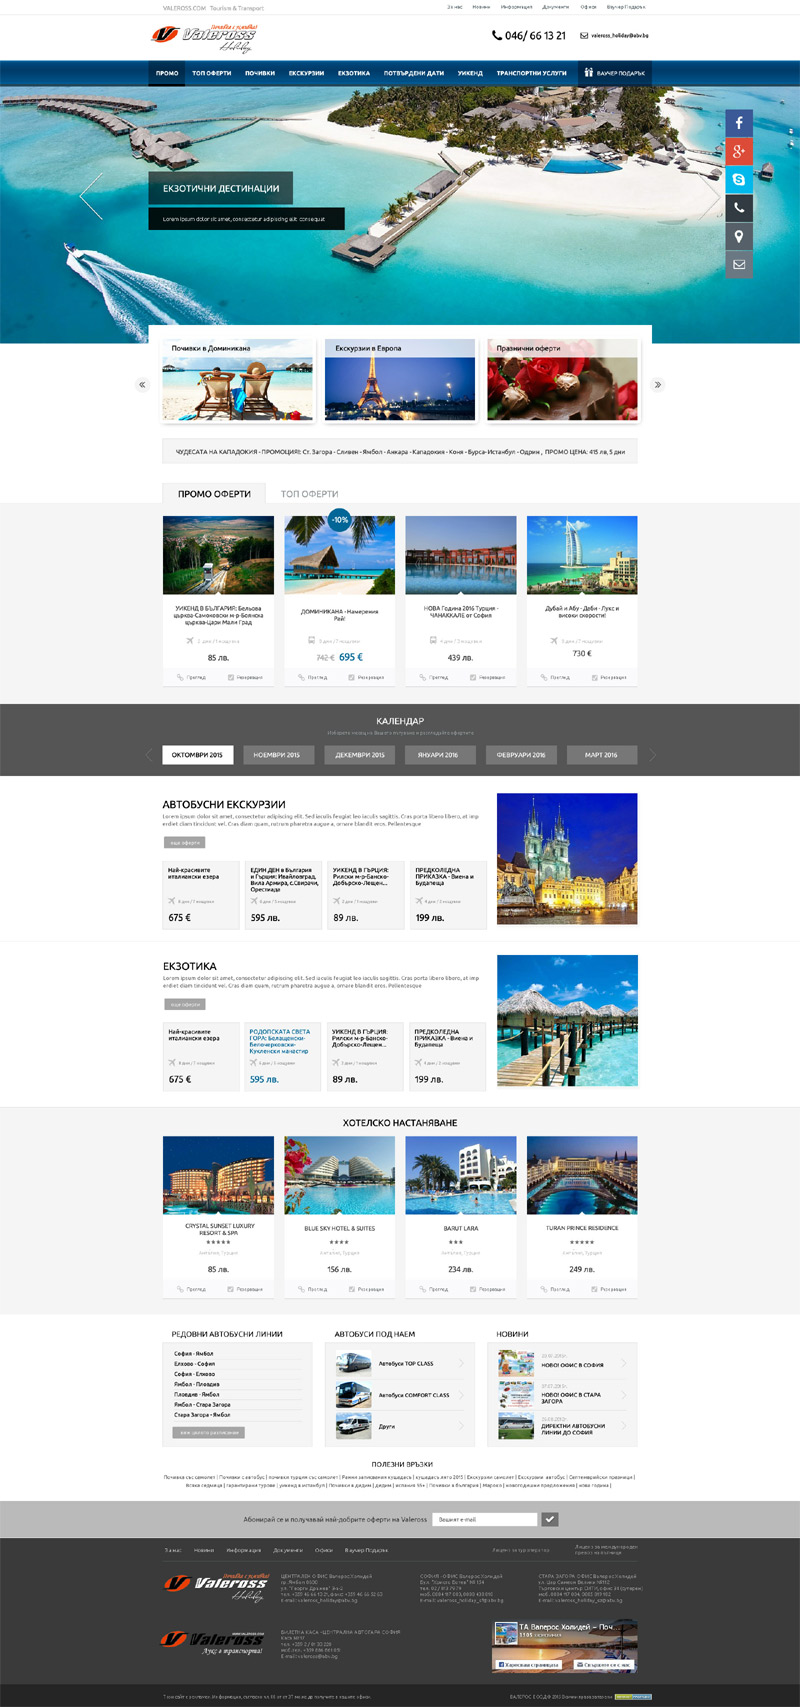 Four Seasons Travel Agent Login